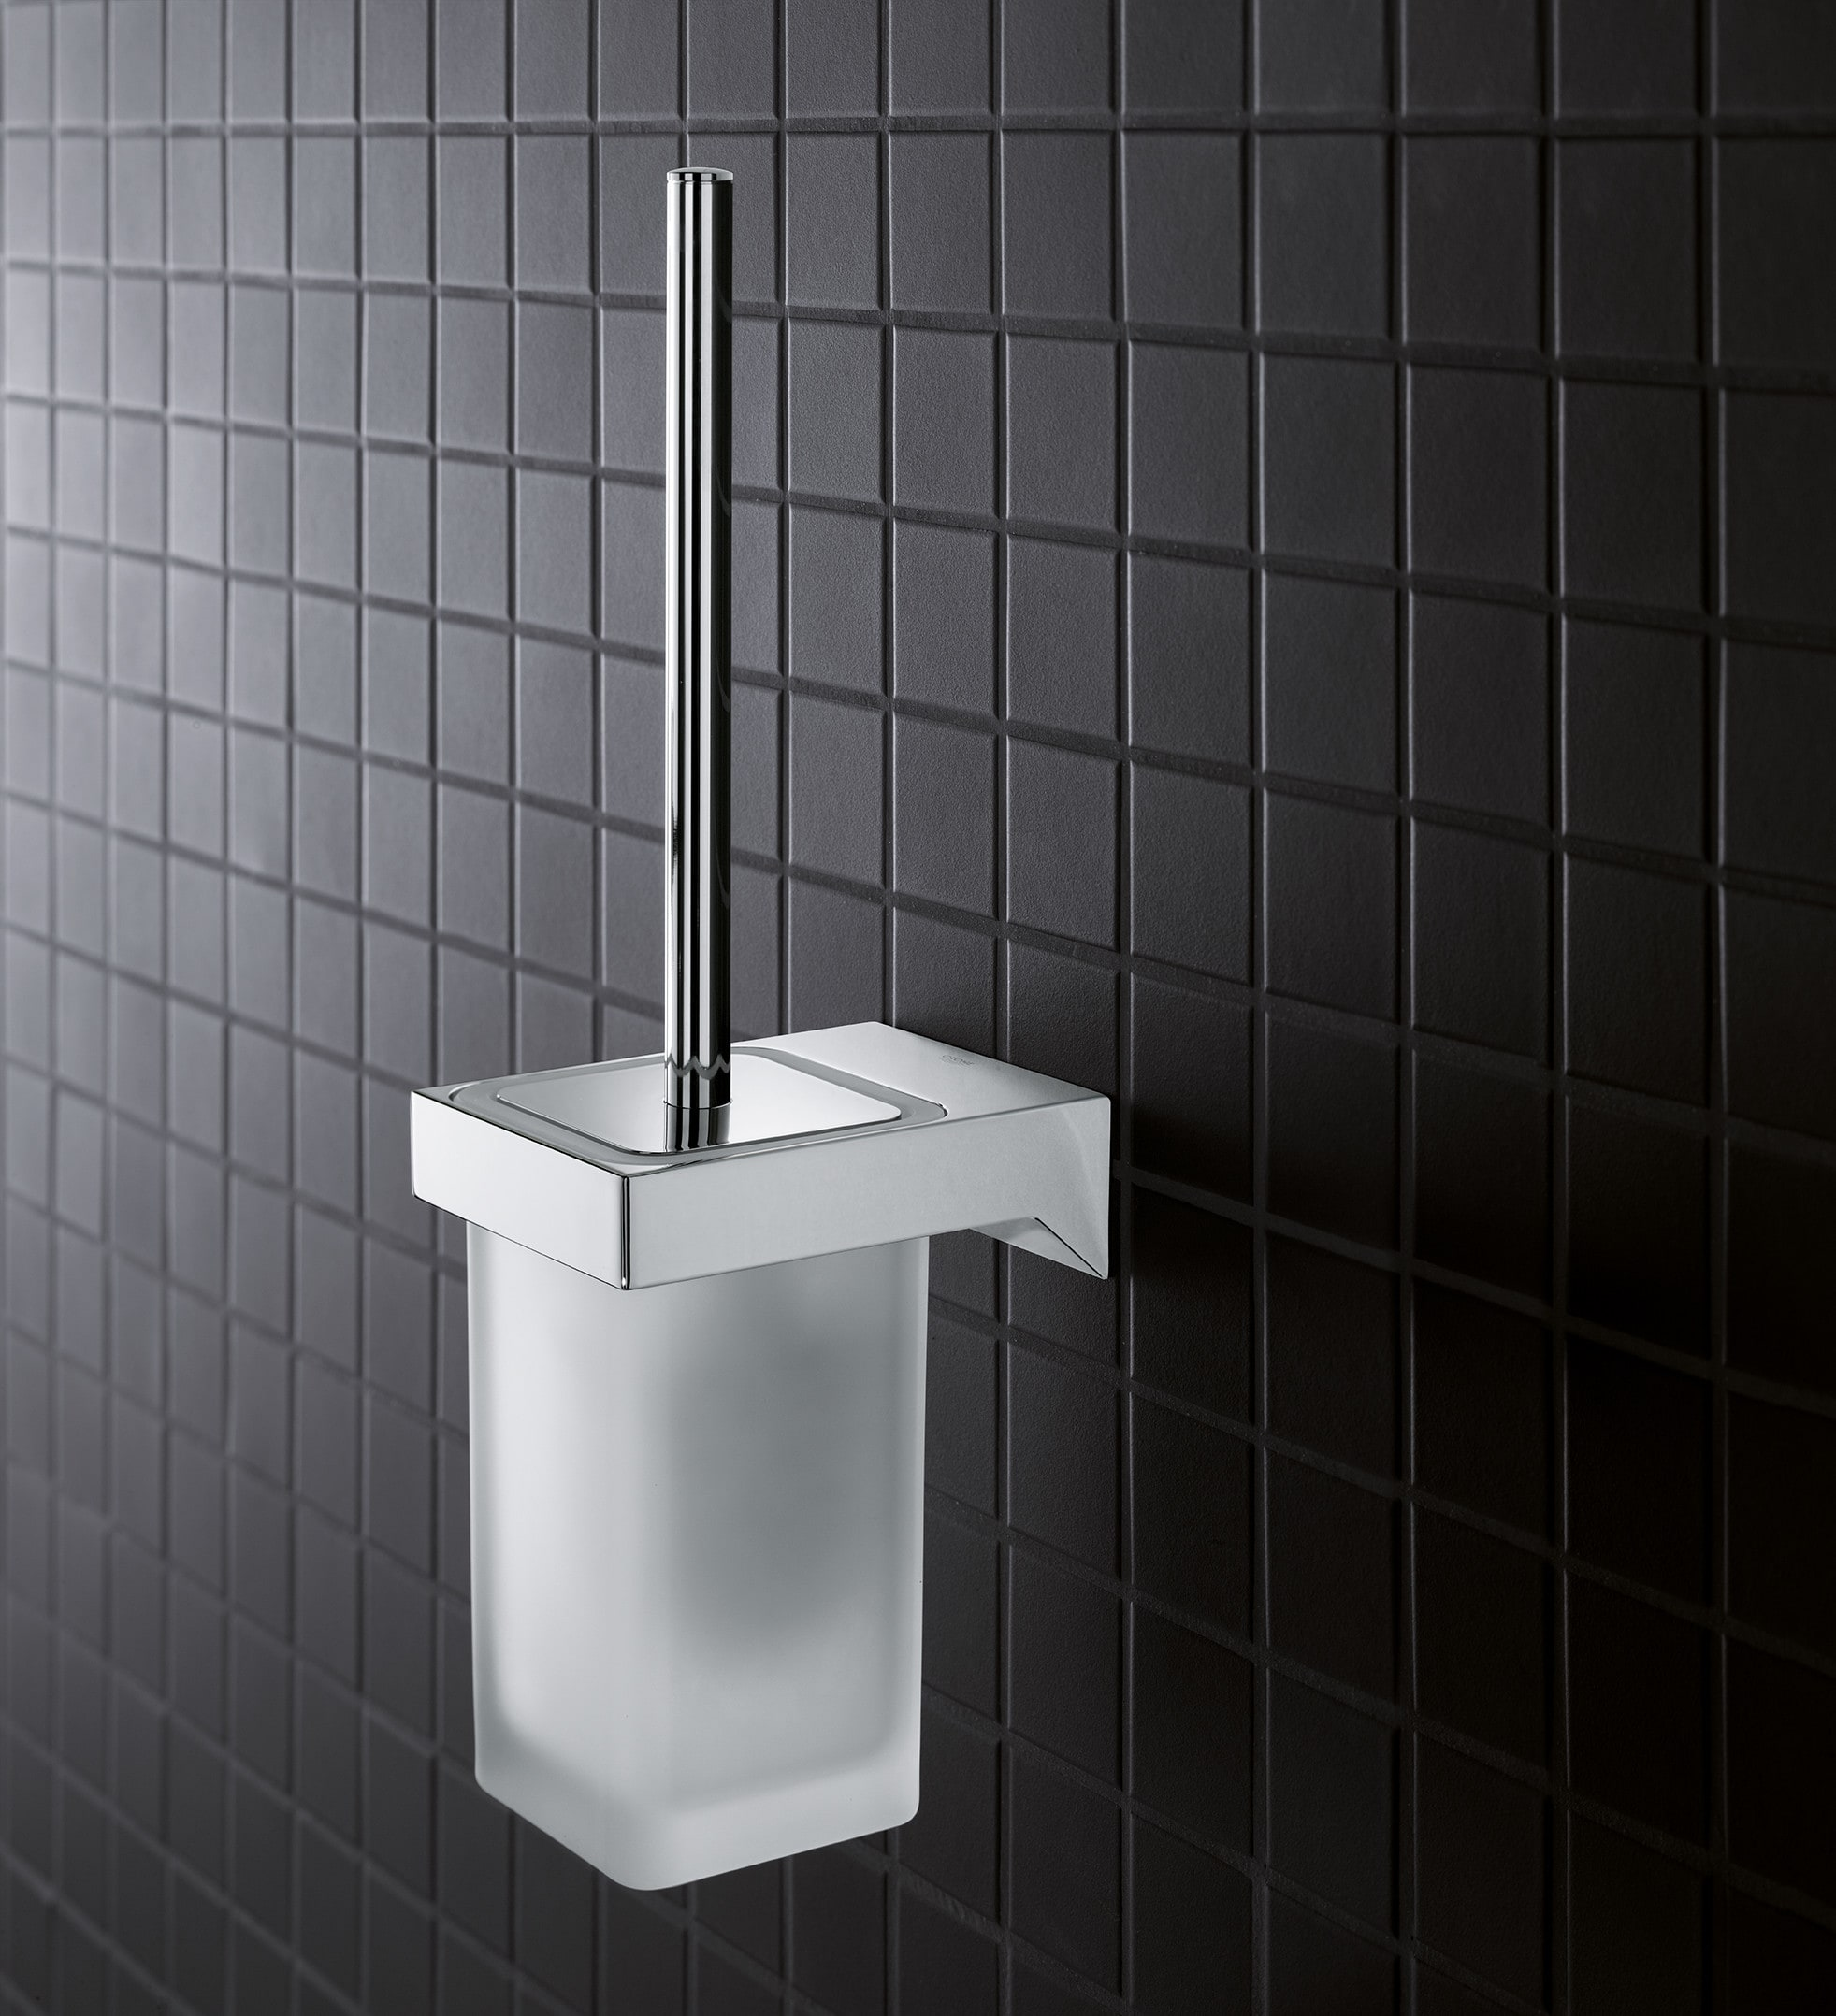 Grohe 40857000 Starlight Chrome Selection Cube Wall Mounted Toilet ...